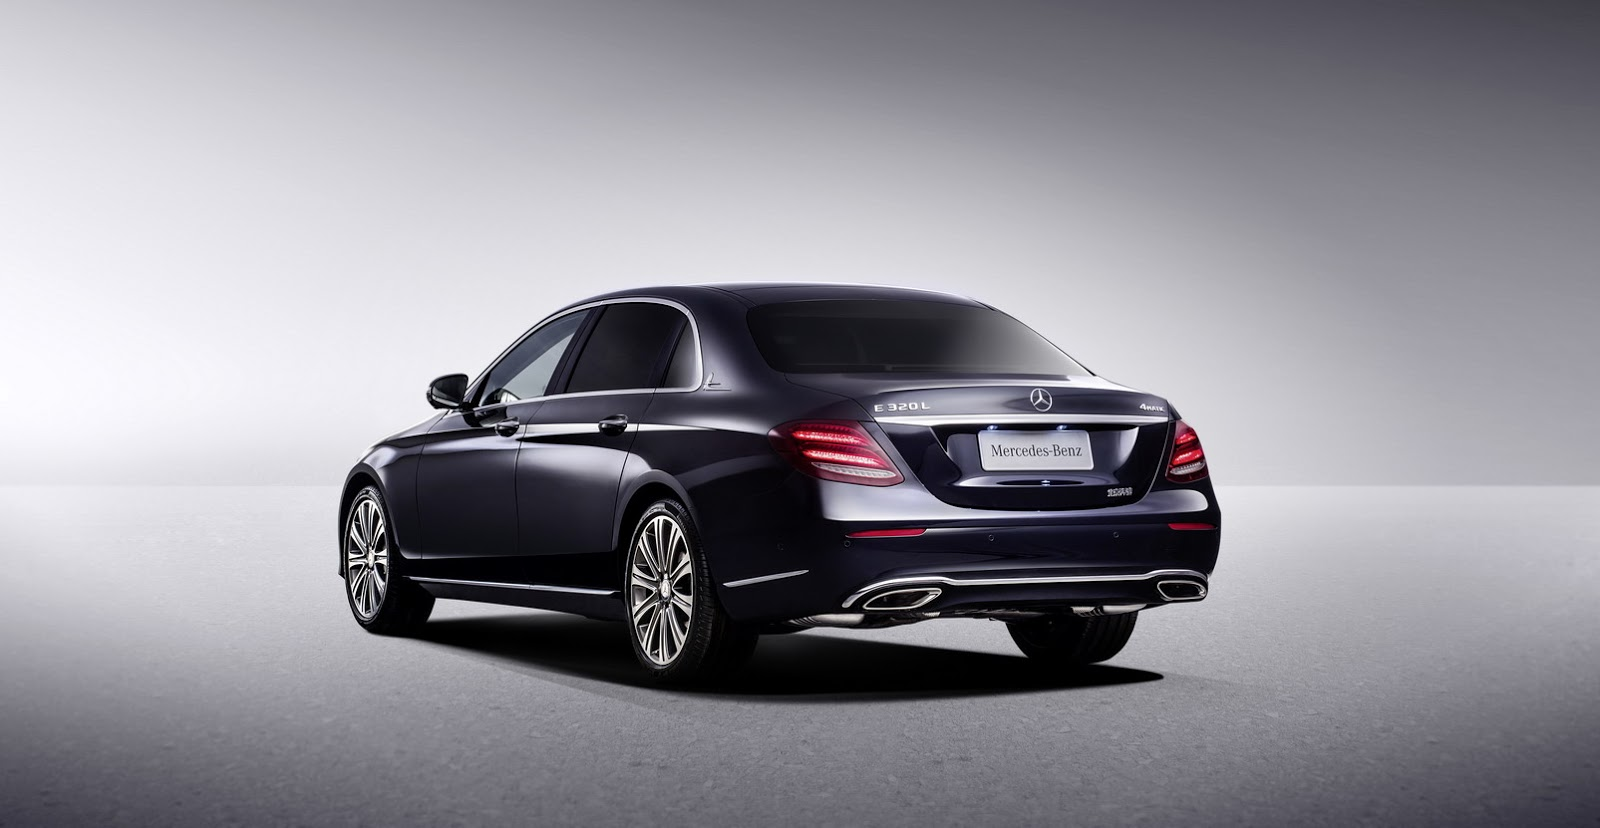 china 39 s new mercedes benz e class lwb looks like a mini maybach carscoops. Black Bedroom Furniture Sets. Home Design Ideas